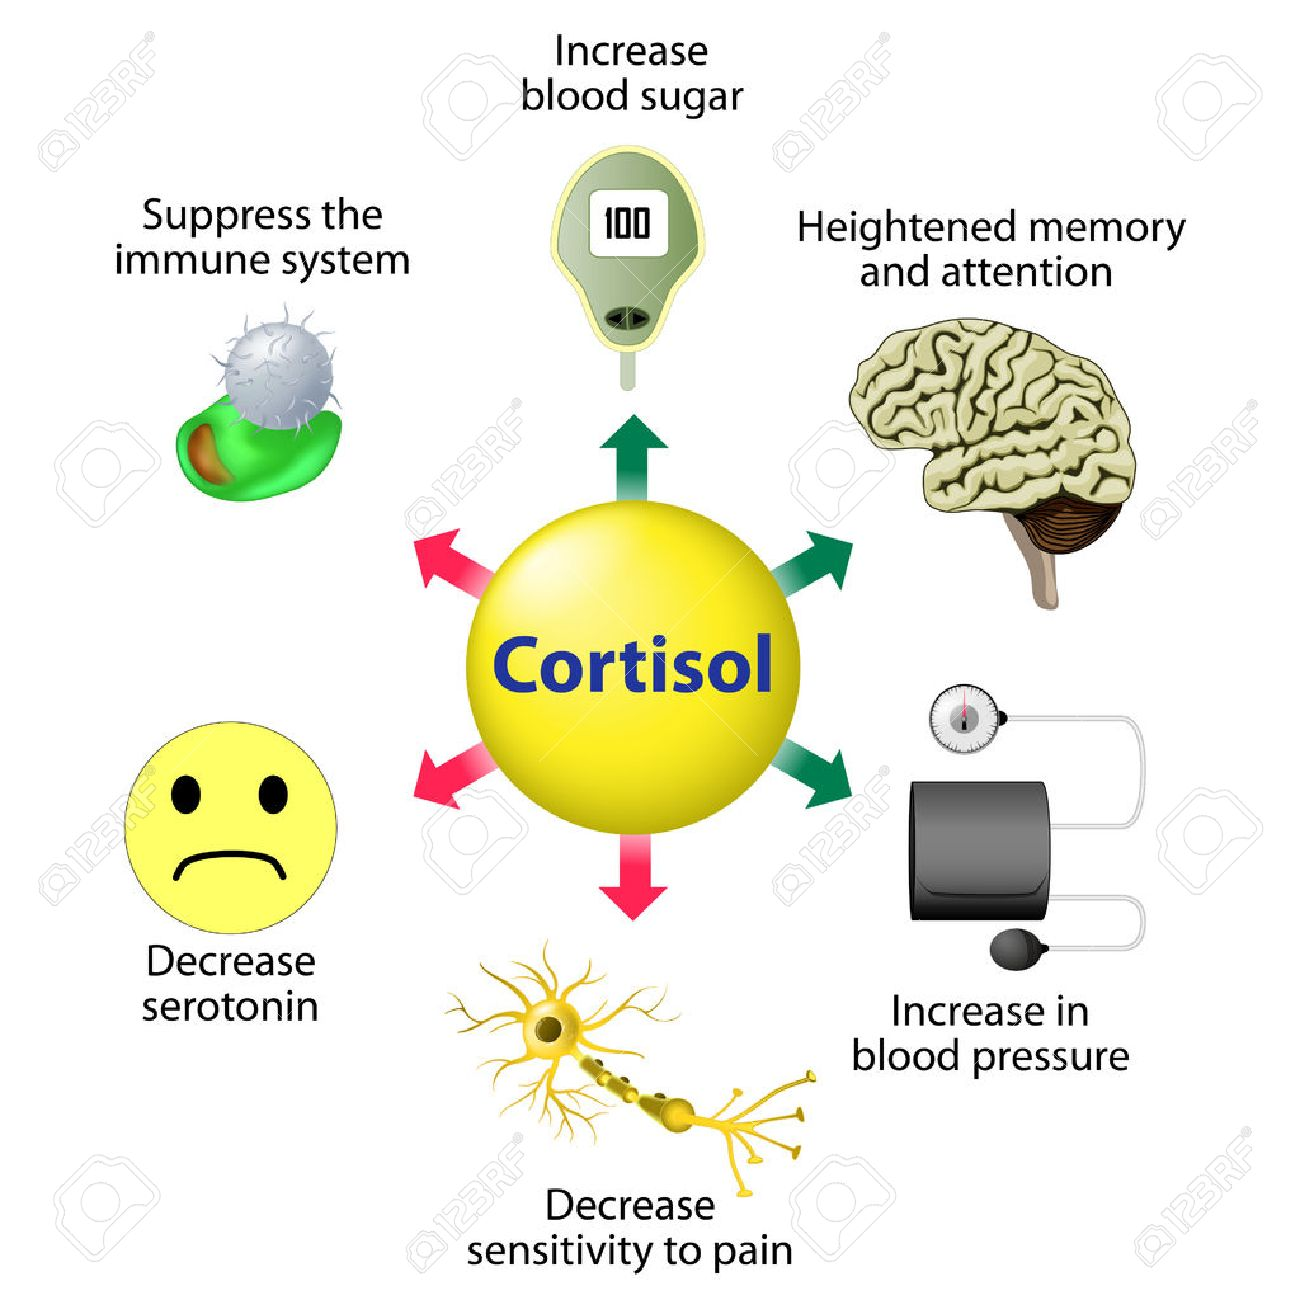 Cortisol Functions. Cortisol is released in response to stress and low blood-glucose concentration. - 52586698